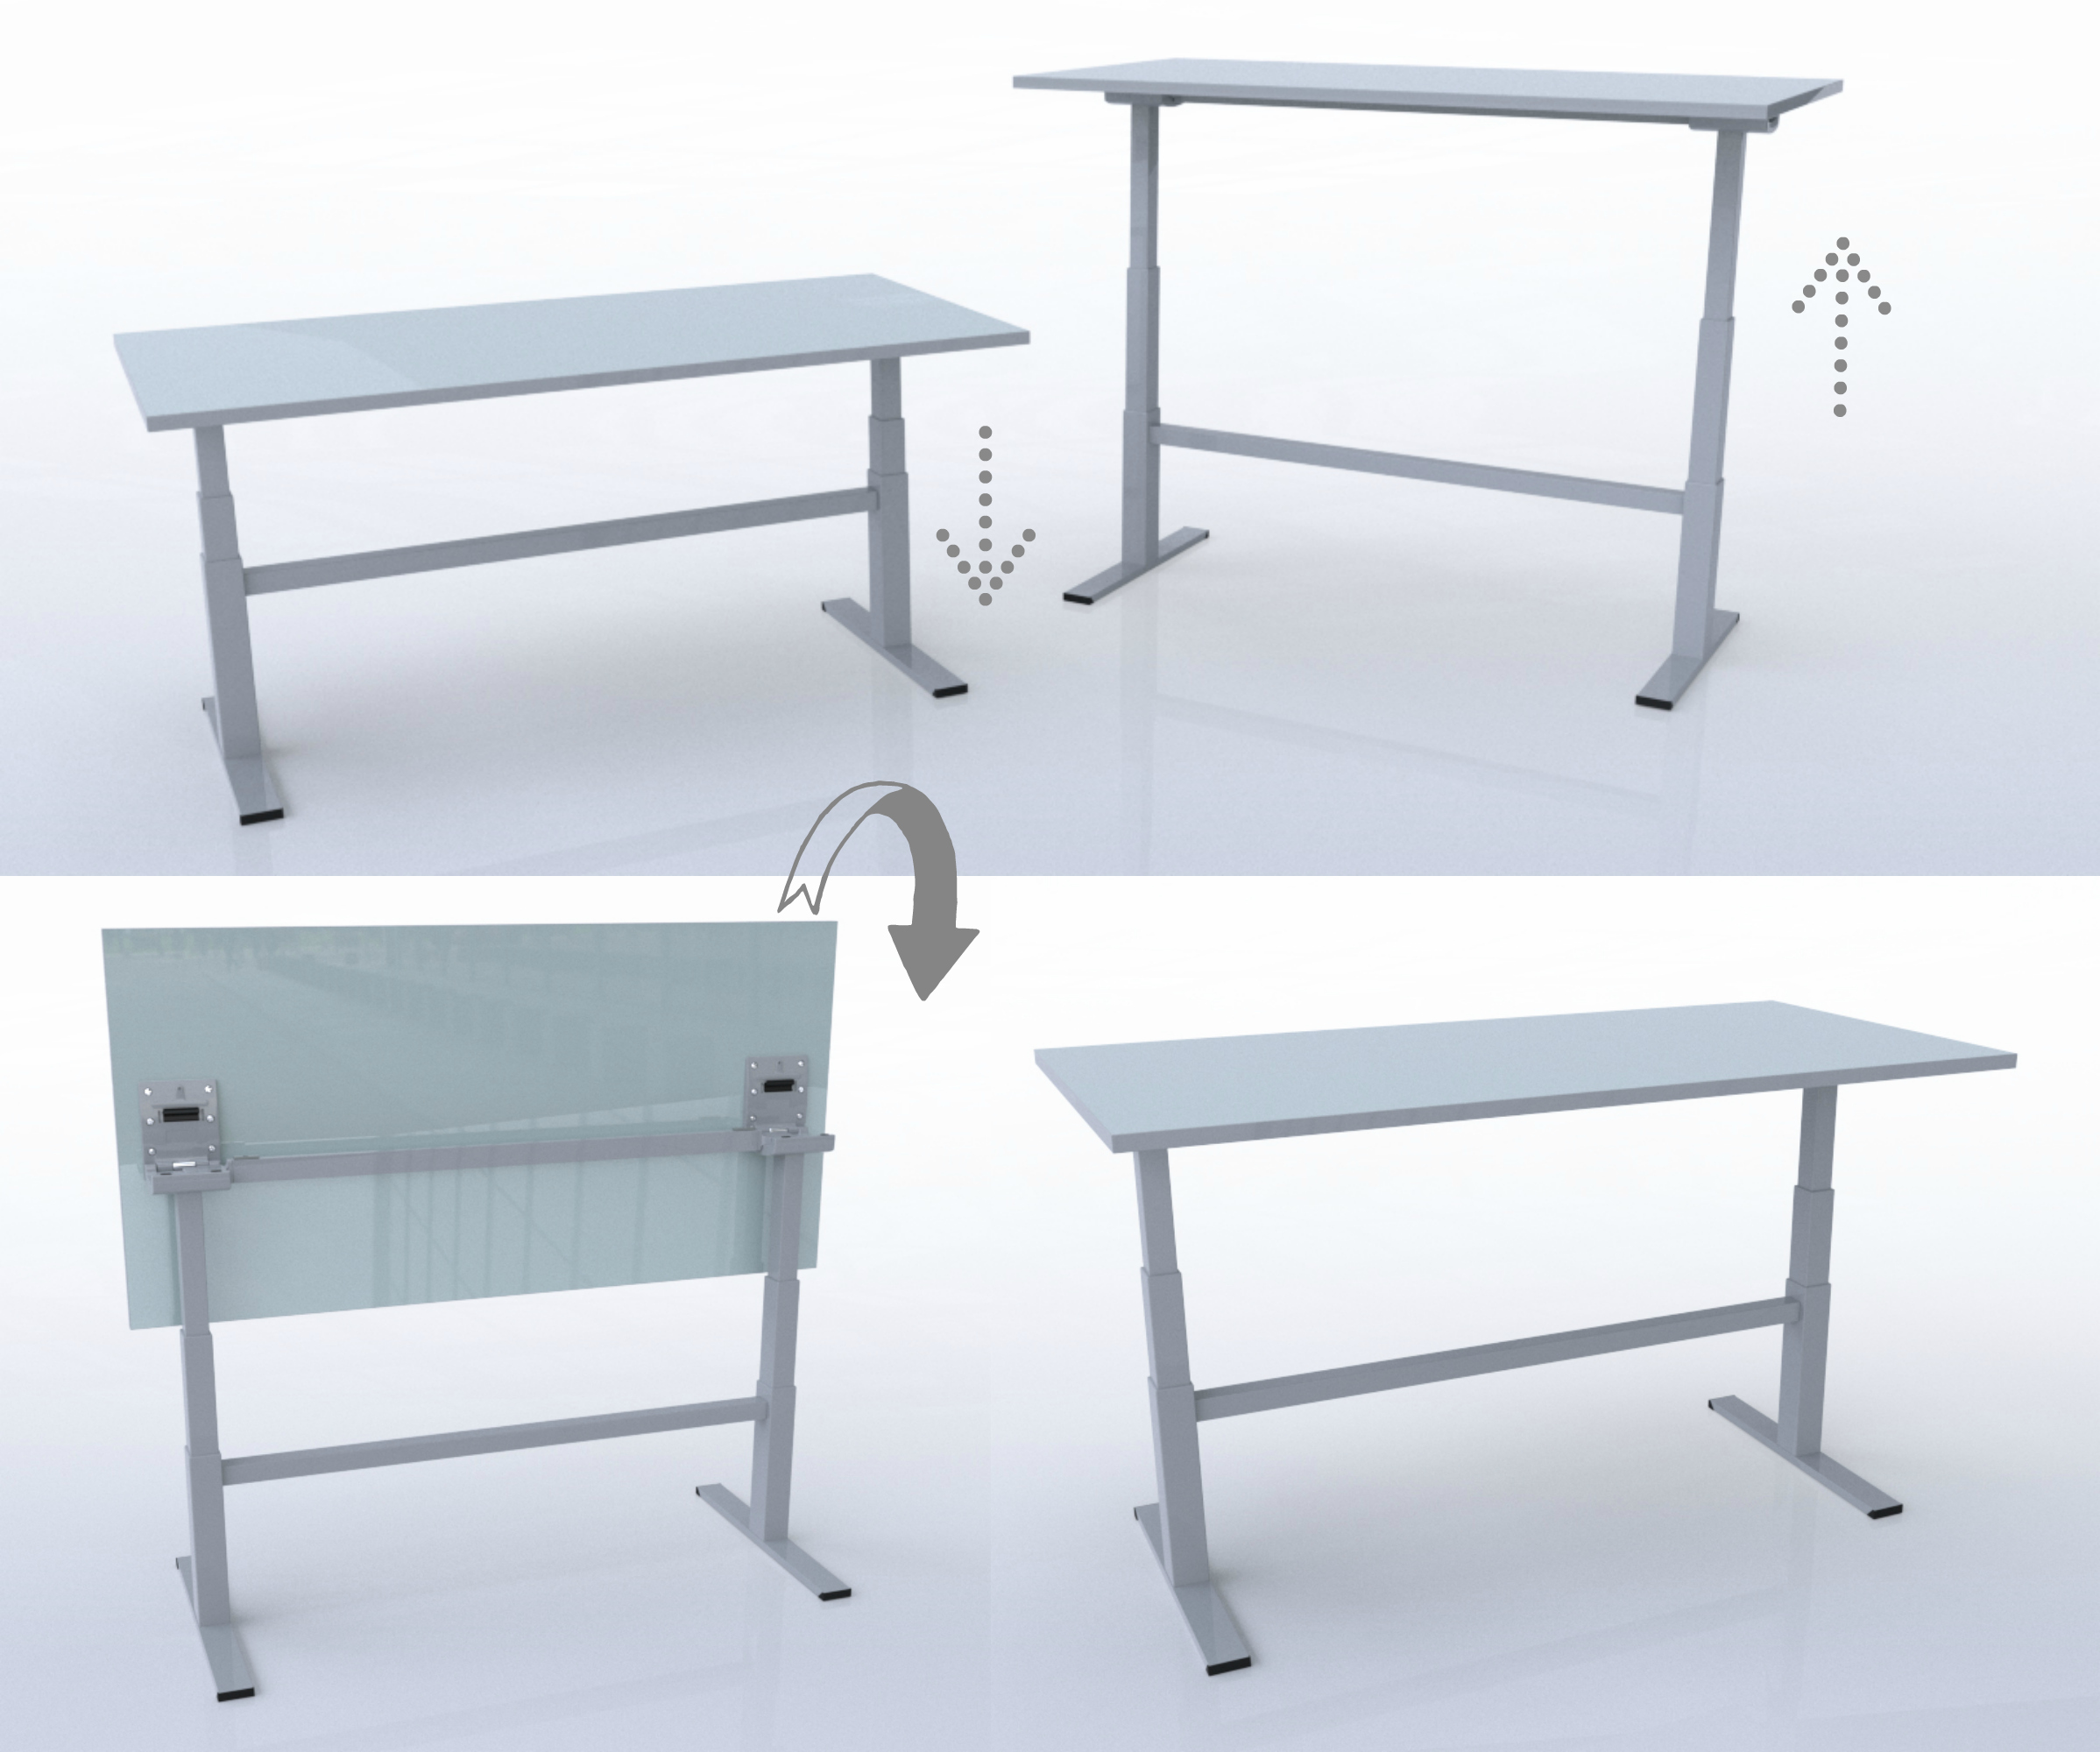 HATT-Height Adjustable Tilt Table - Assembly Instructions